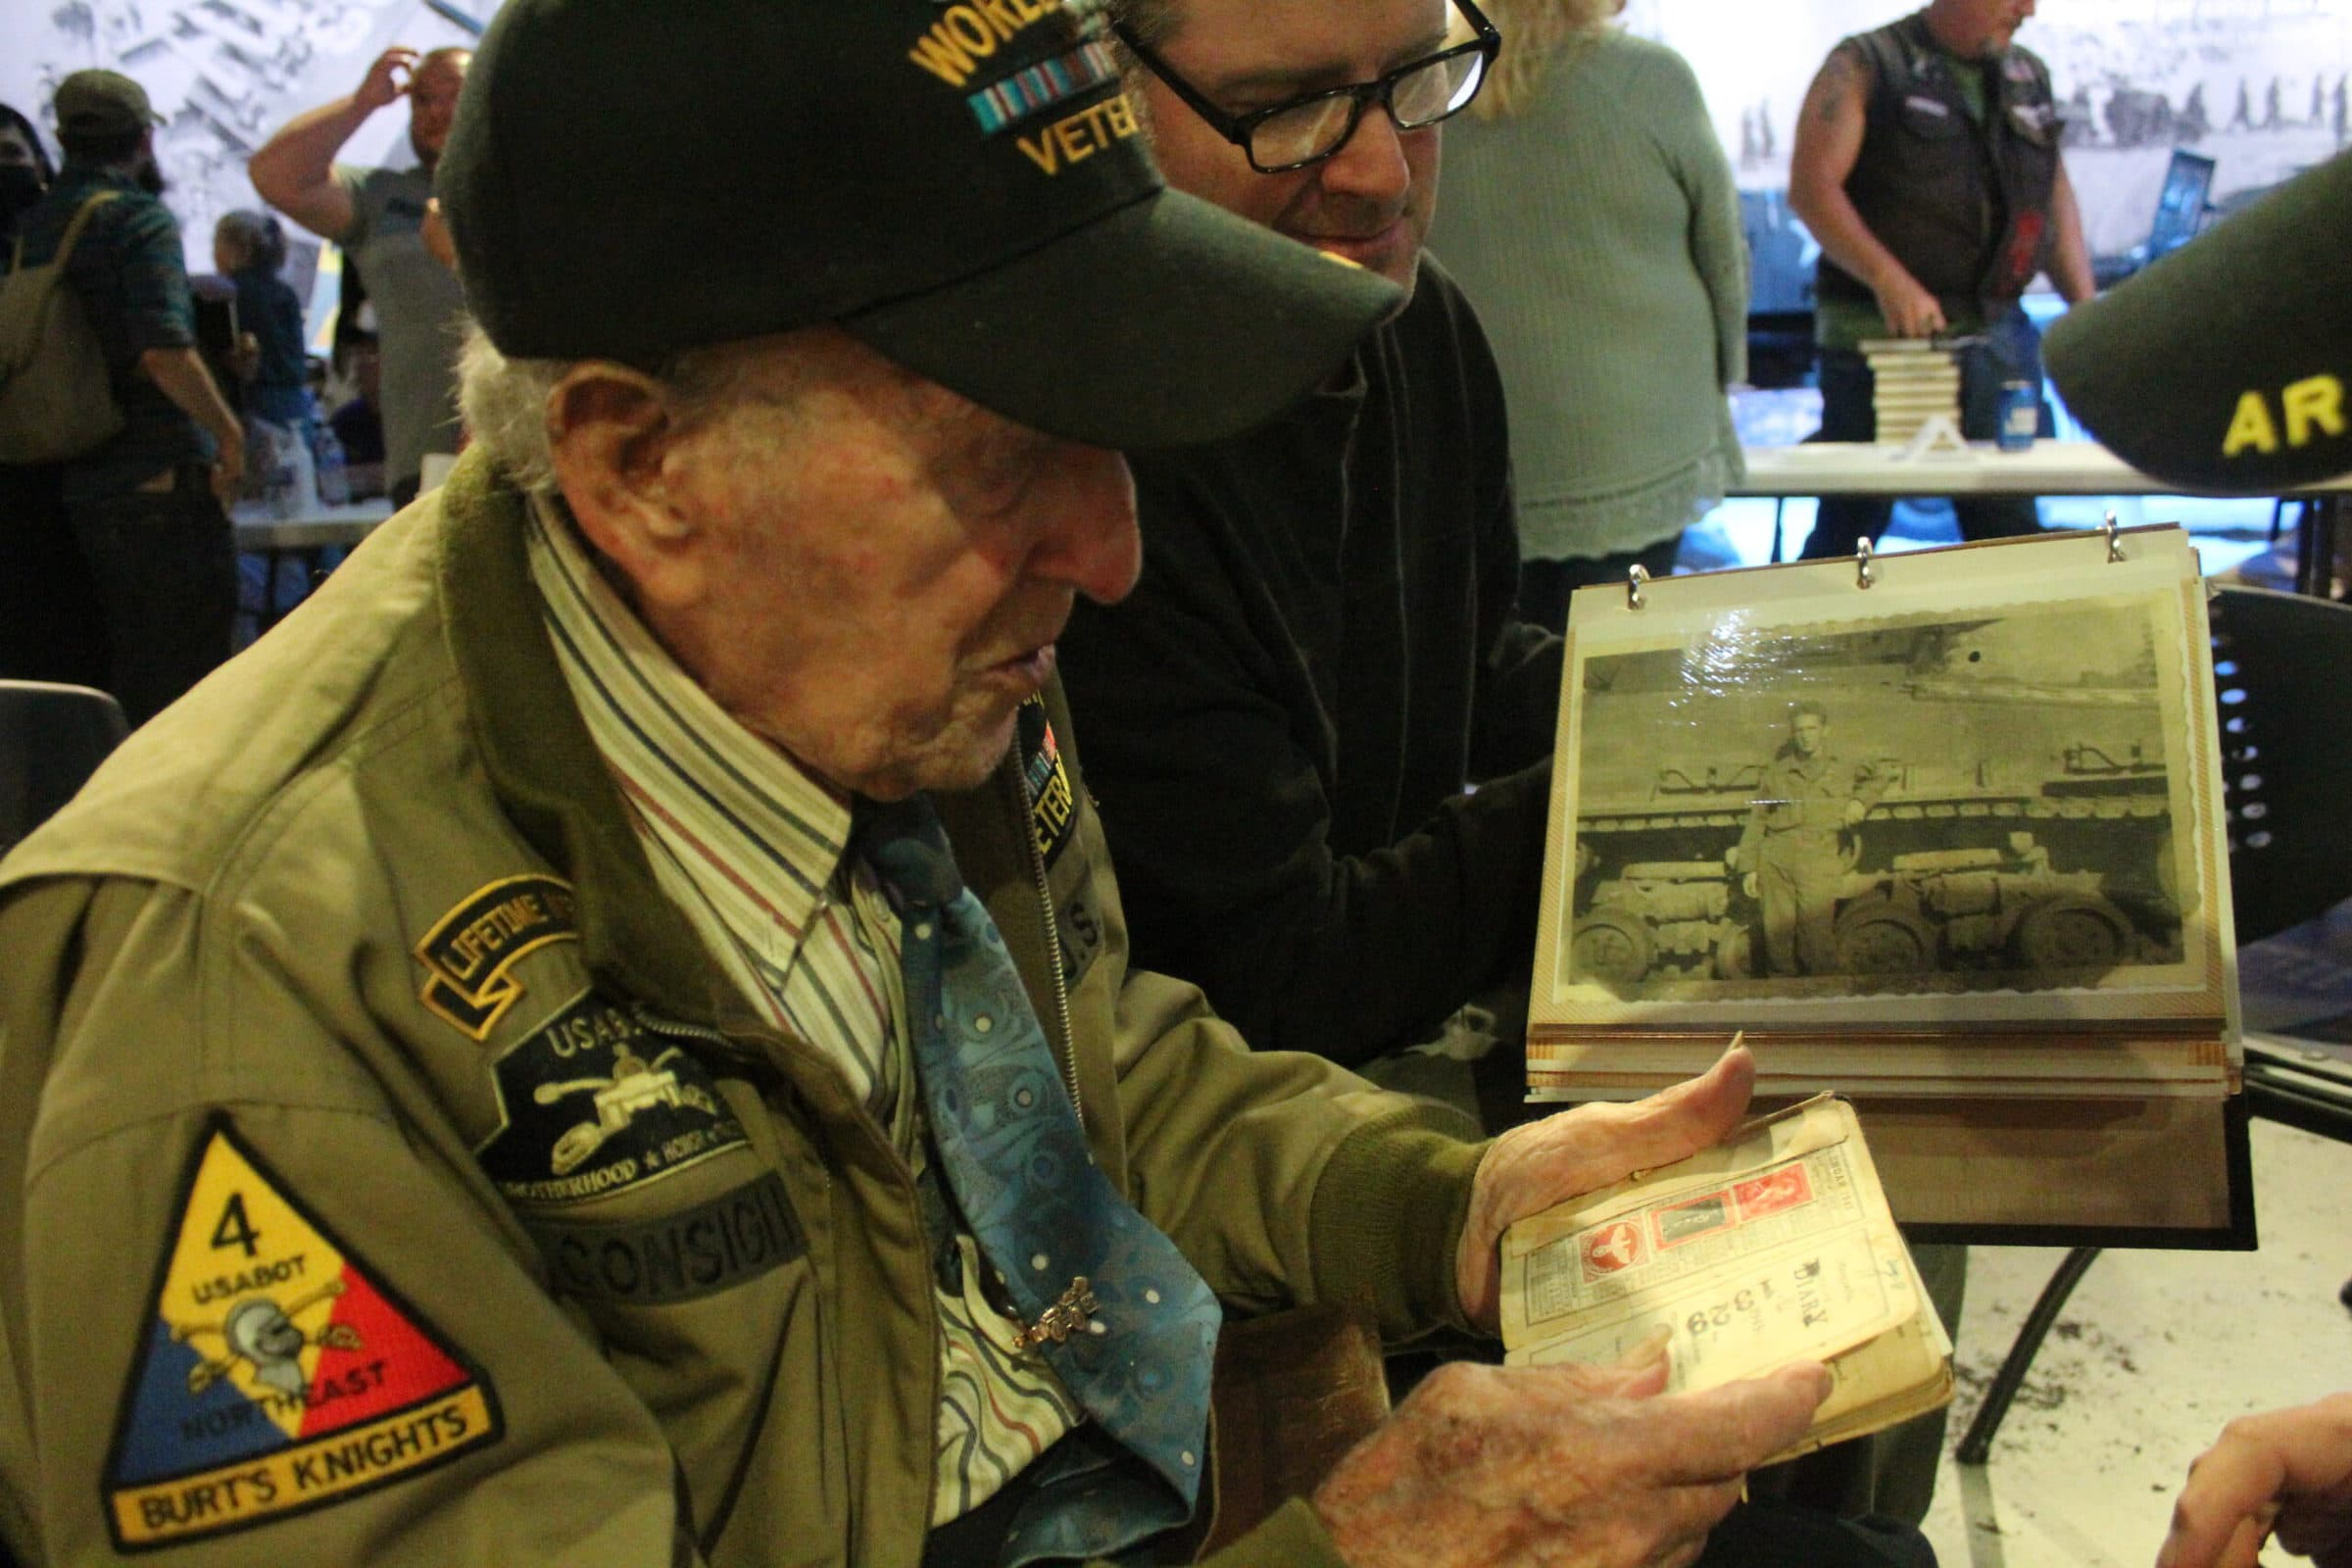 Albert Consigli shows the journal he kept during WWII.